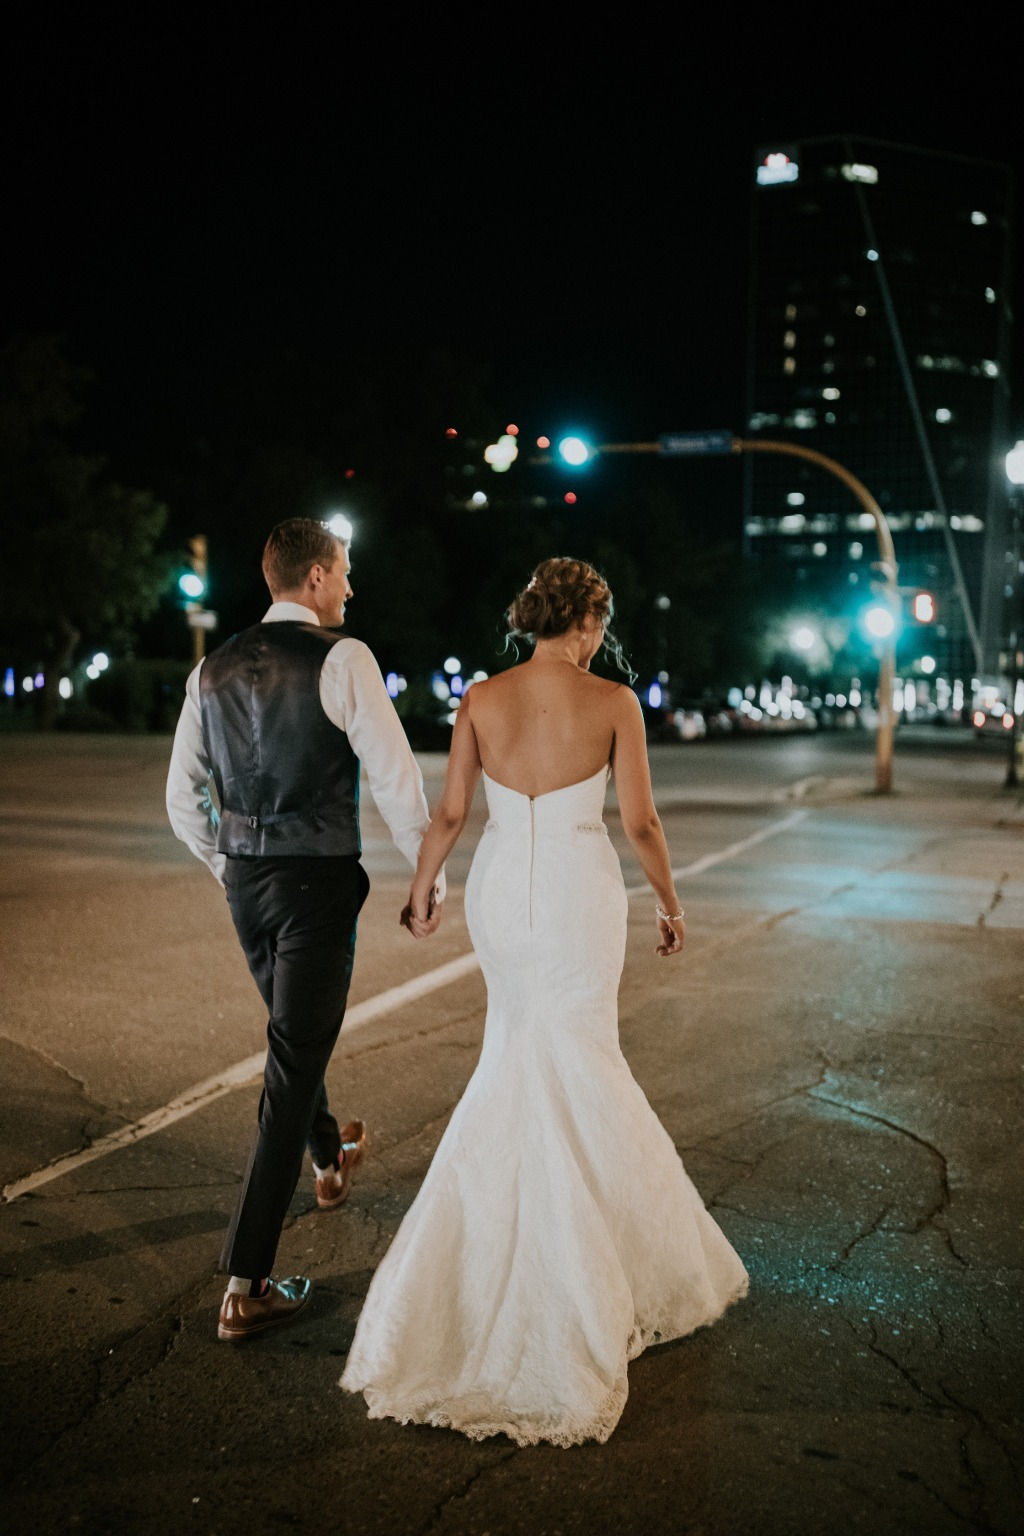 TORI + JARED'S SASKATCHEWAN WEDDING